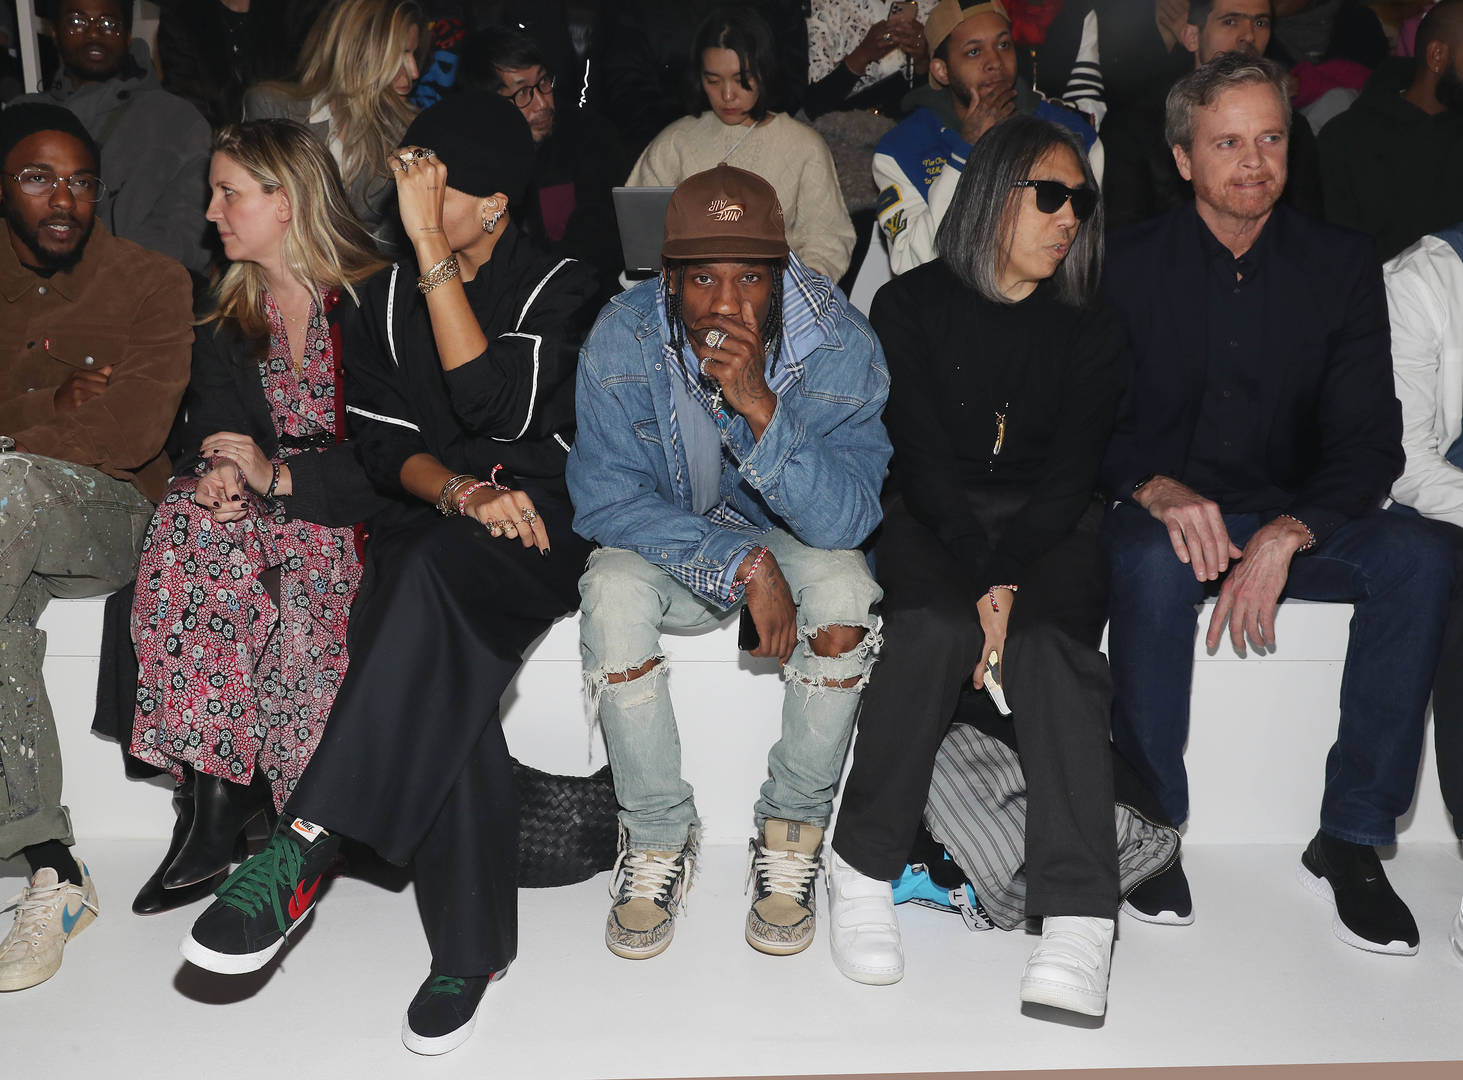 Recording artist Travis Scott attends the 2020 Tokyo Olympic collection fashion show at The Shed on February 05, 2020 in New York City.